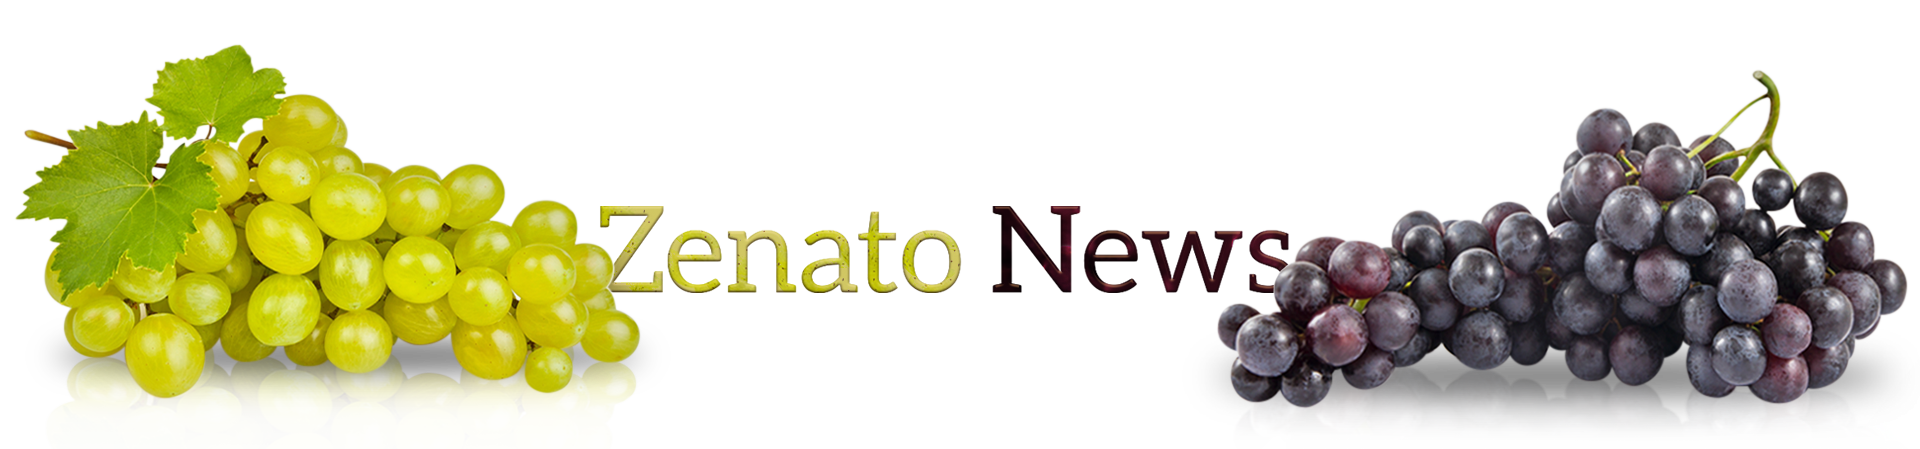 header zenato news grappoli